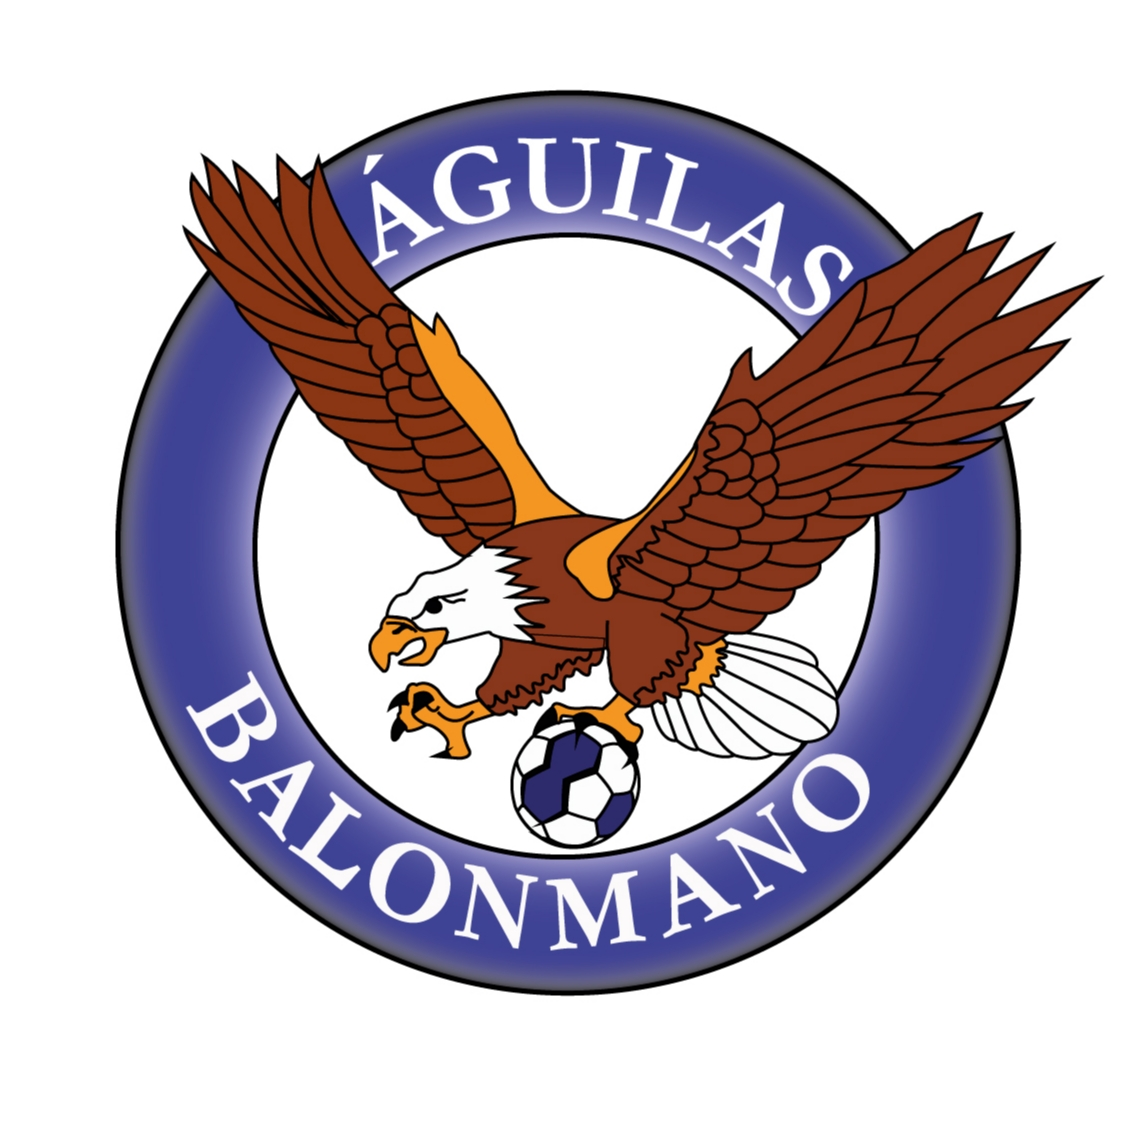 CLUB BALONMANO �GUILAS